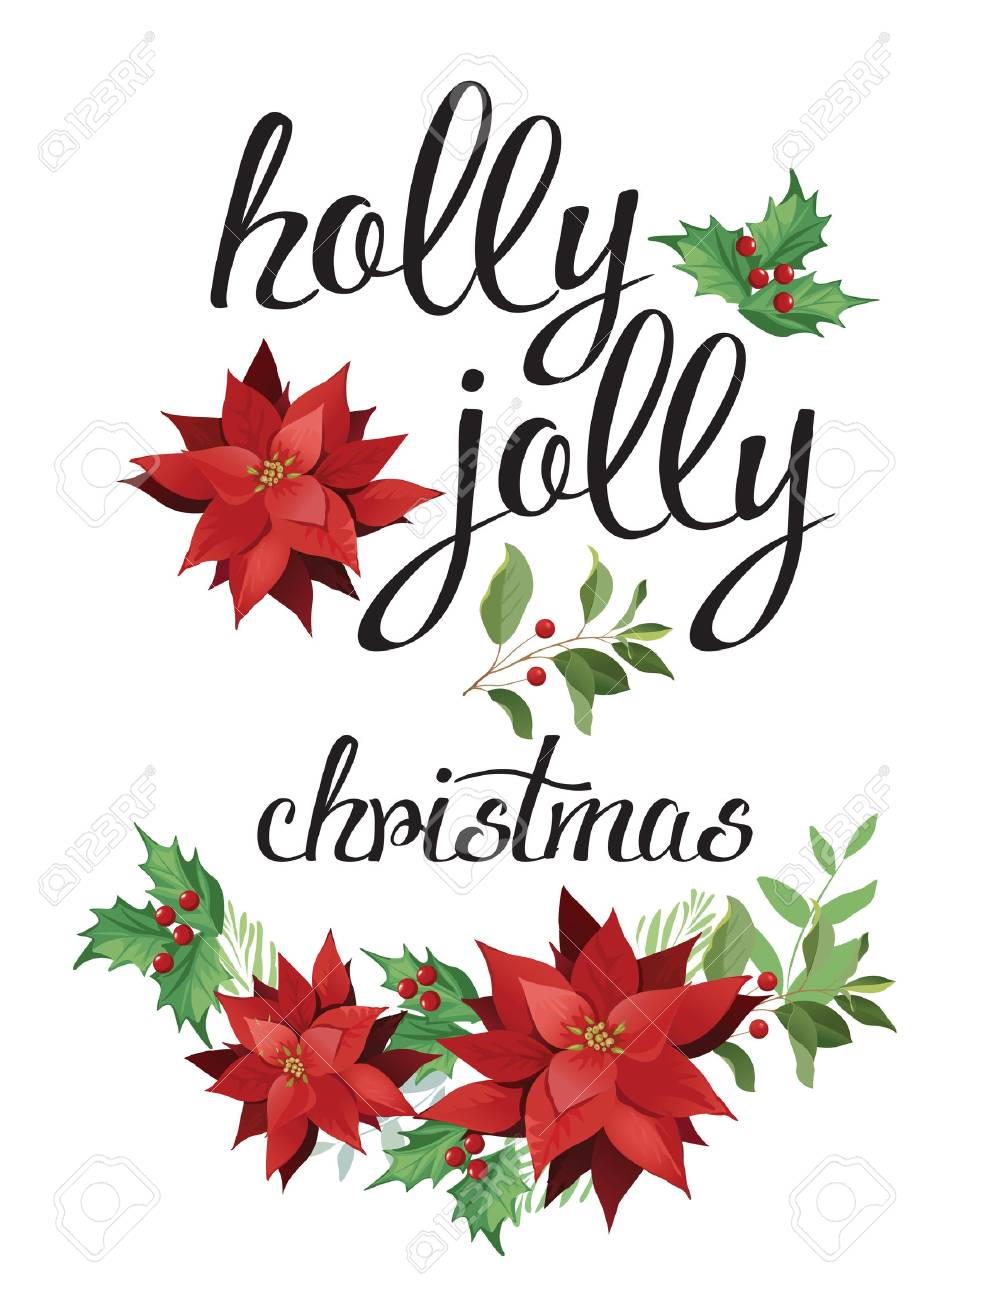 Holly, jolly. Wreath of red poinsettia and leaves. Watercolor illustration. - 69150044